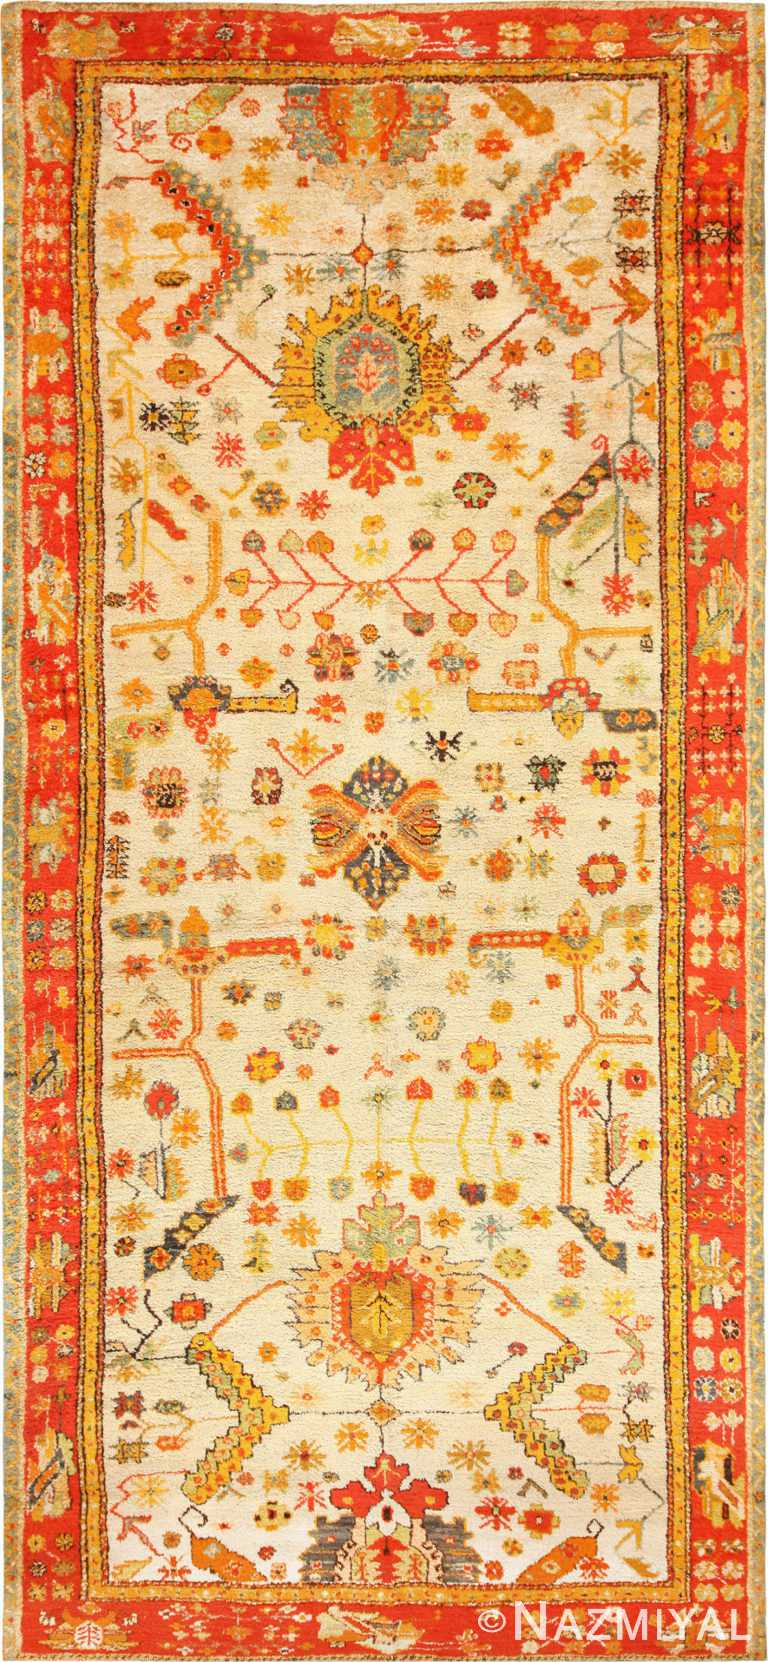 Antique Turkish Oushak Rug With Arts and Crafts Design 49146 by Nazmiyal